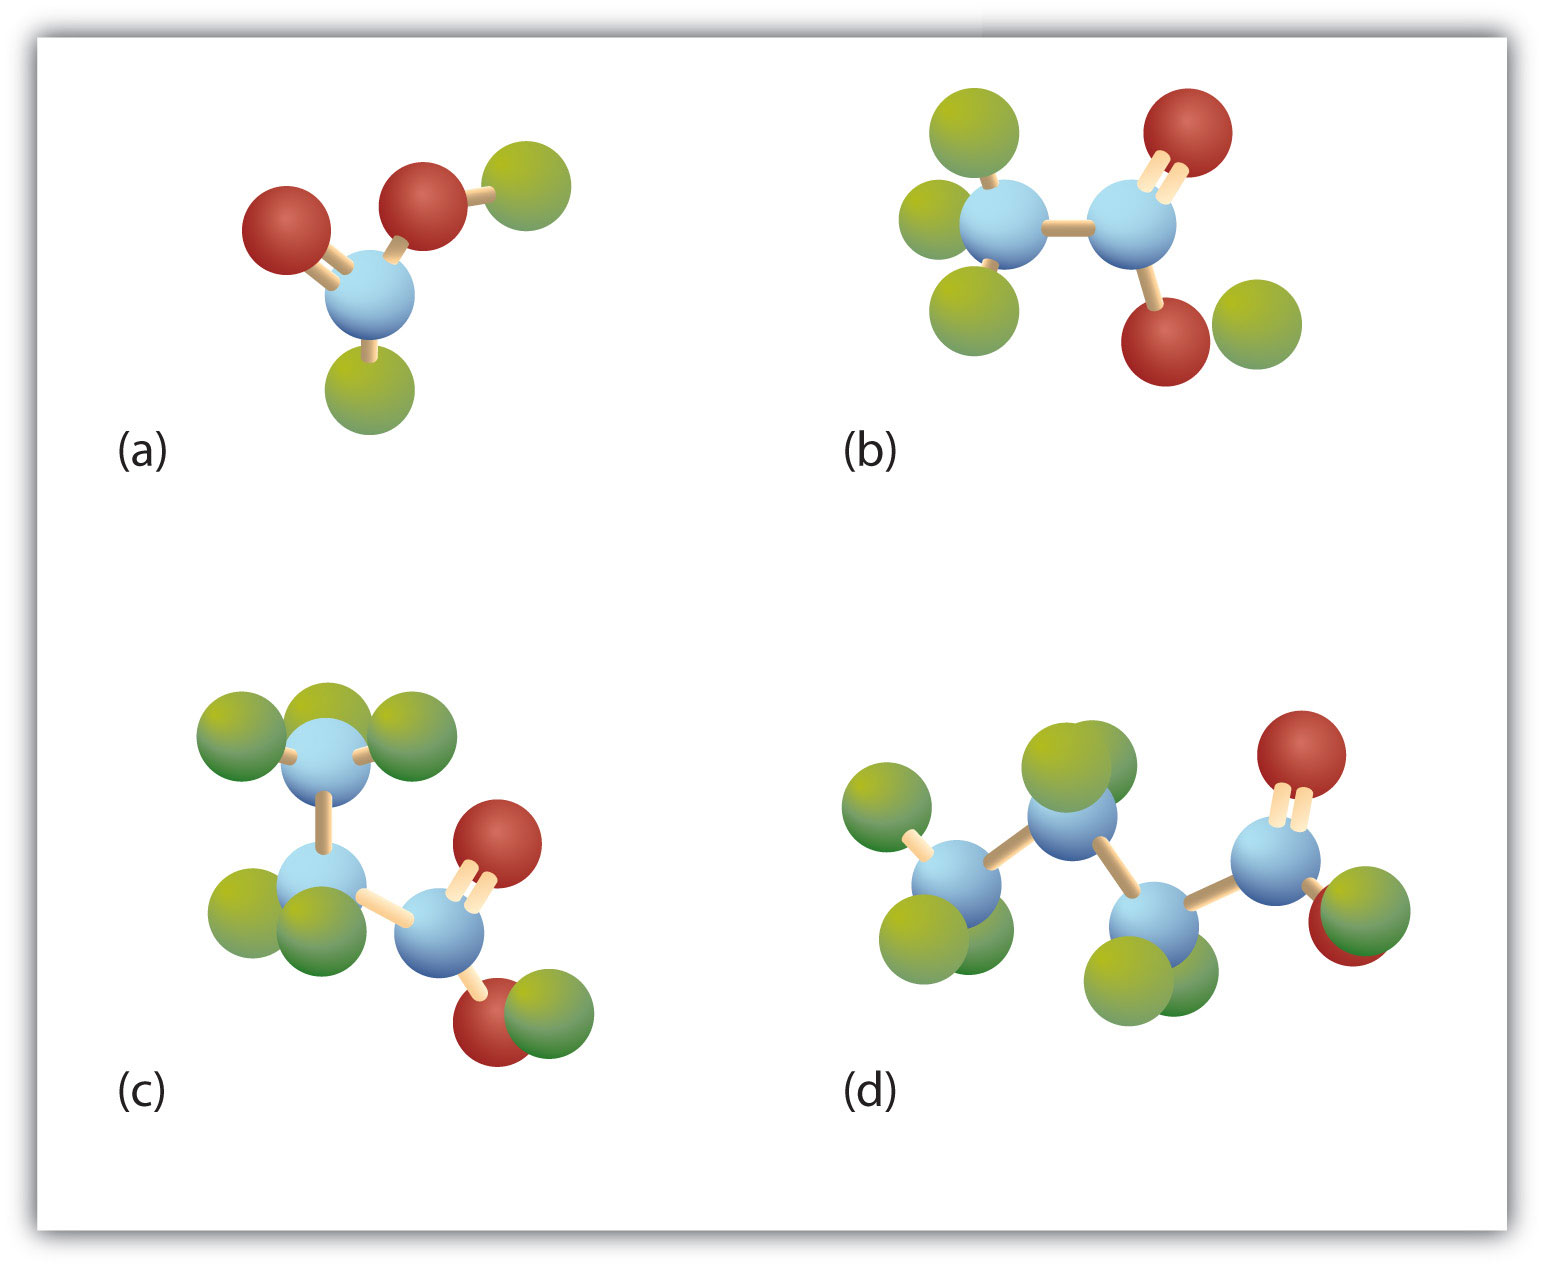 Ball-and-Stick models of simplest carbonic acids (a) Methanoic acid, (b) Ethanoic acid, (c) Propanoic acid and (d) Butanoic acid.